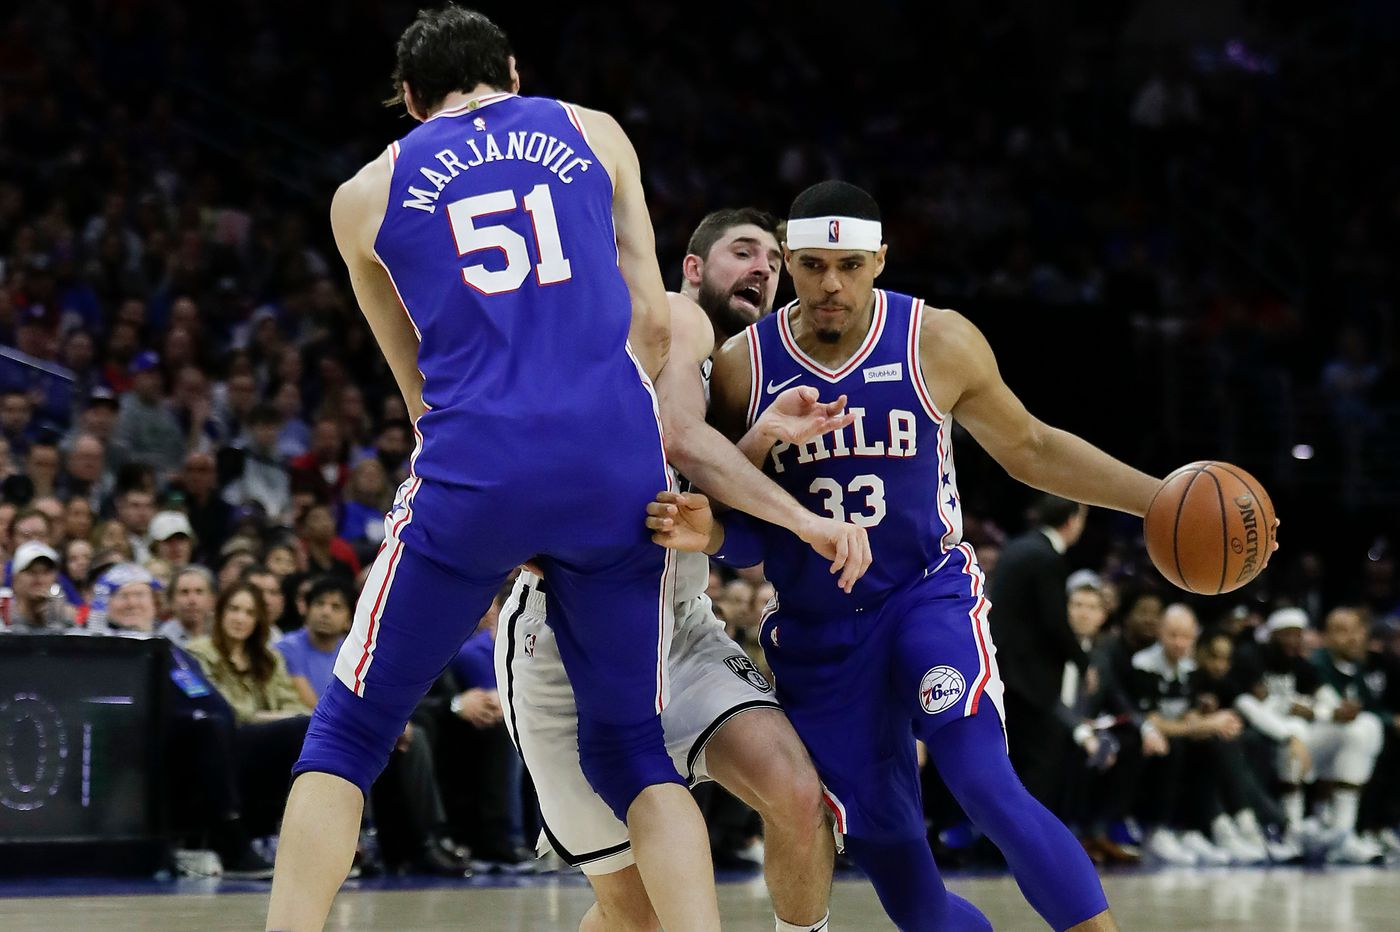 Sixers' talent trumps Nets' chemistry in Game 2 of their NBA playoff series